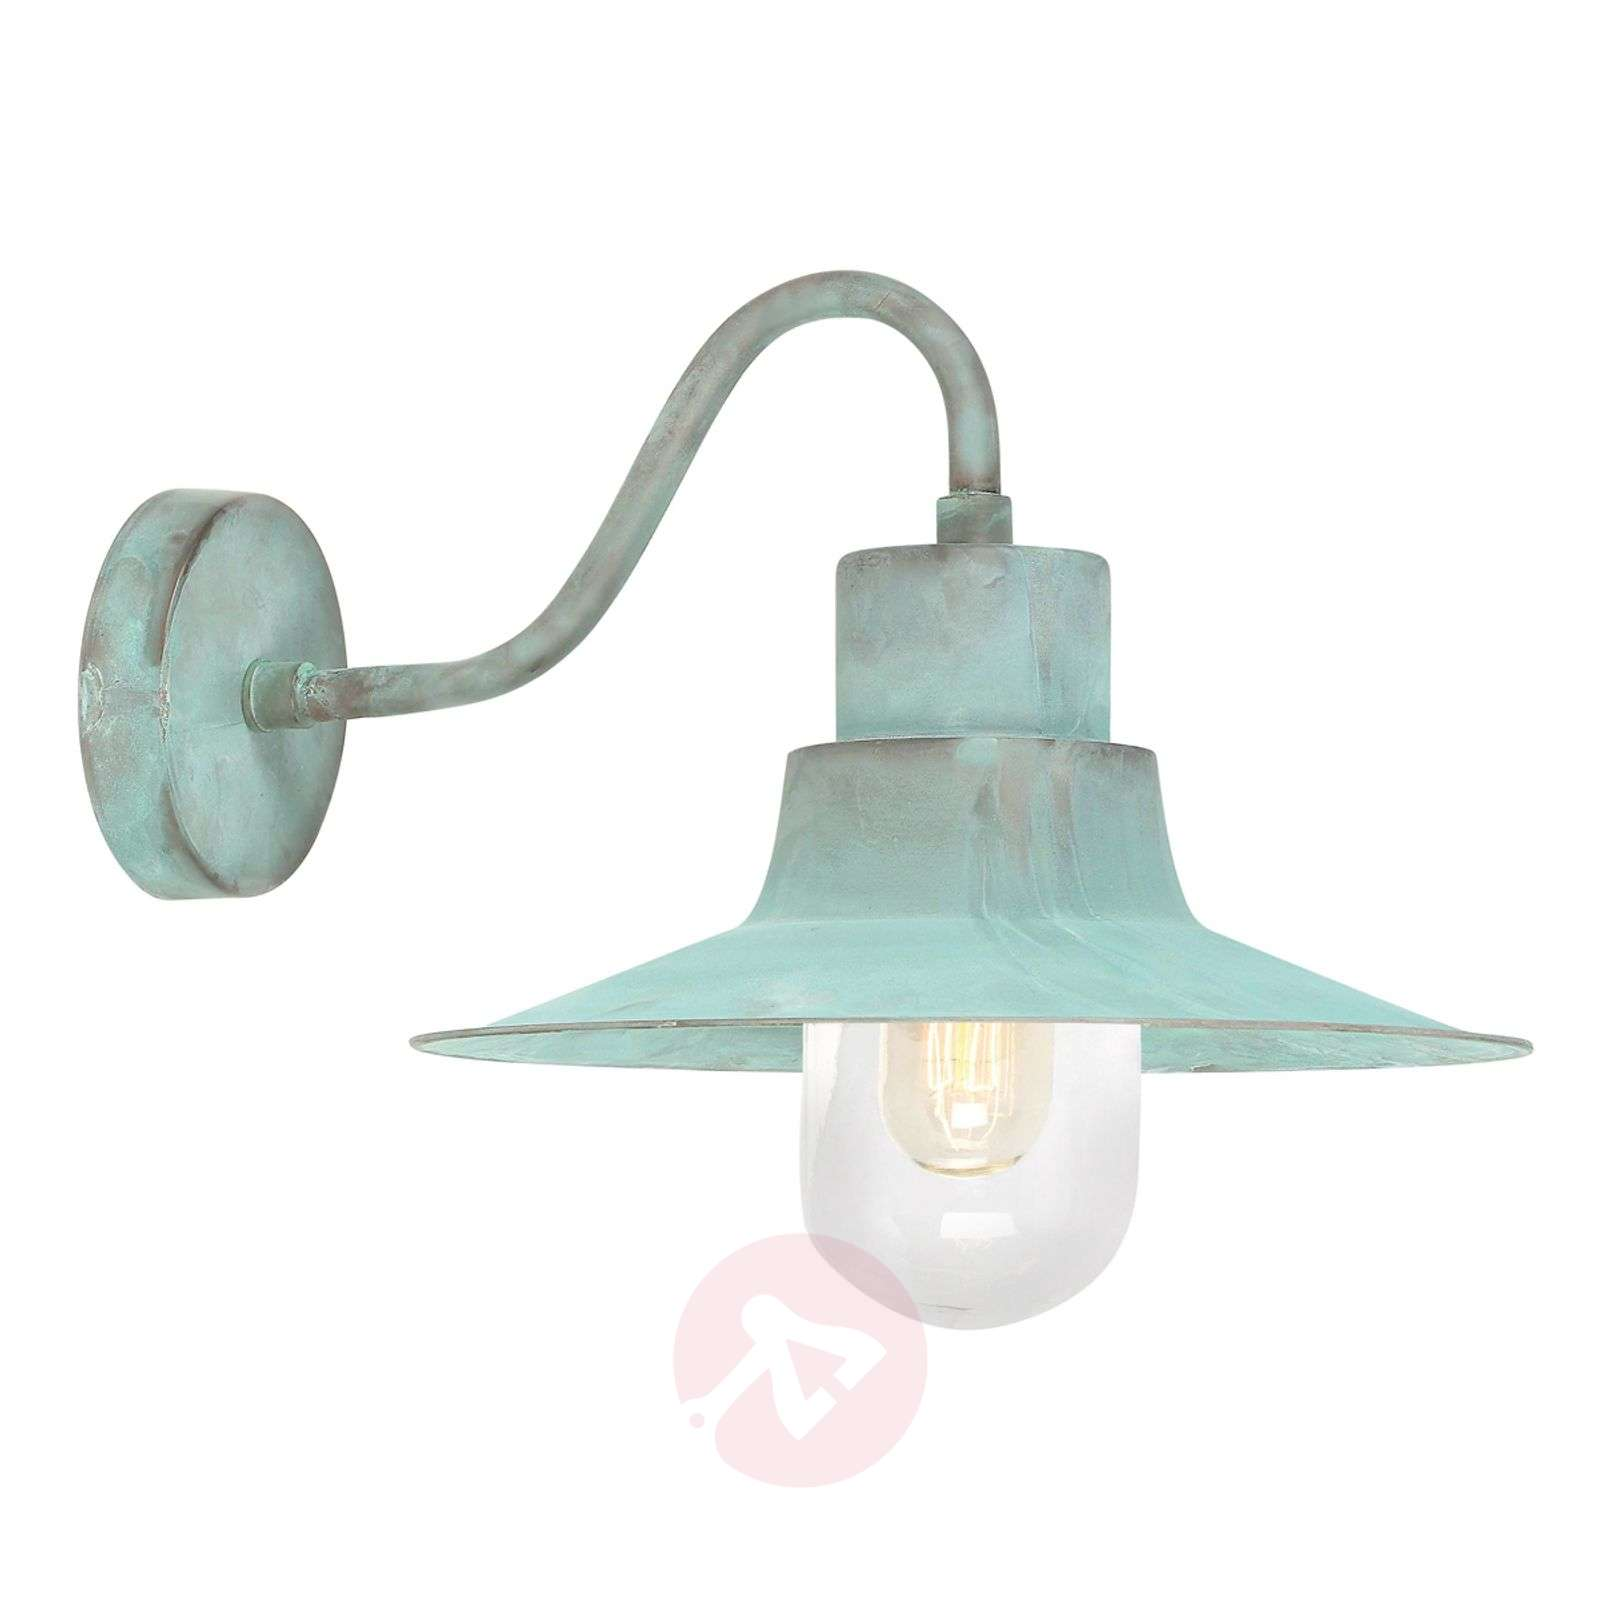 Sheldon green patinated outdoor wall light-3048399-01